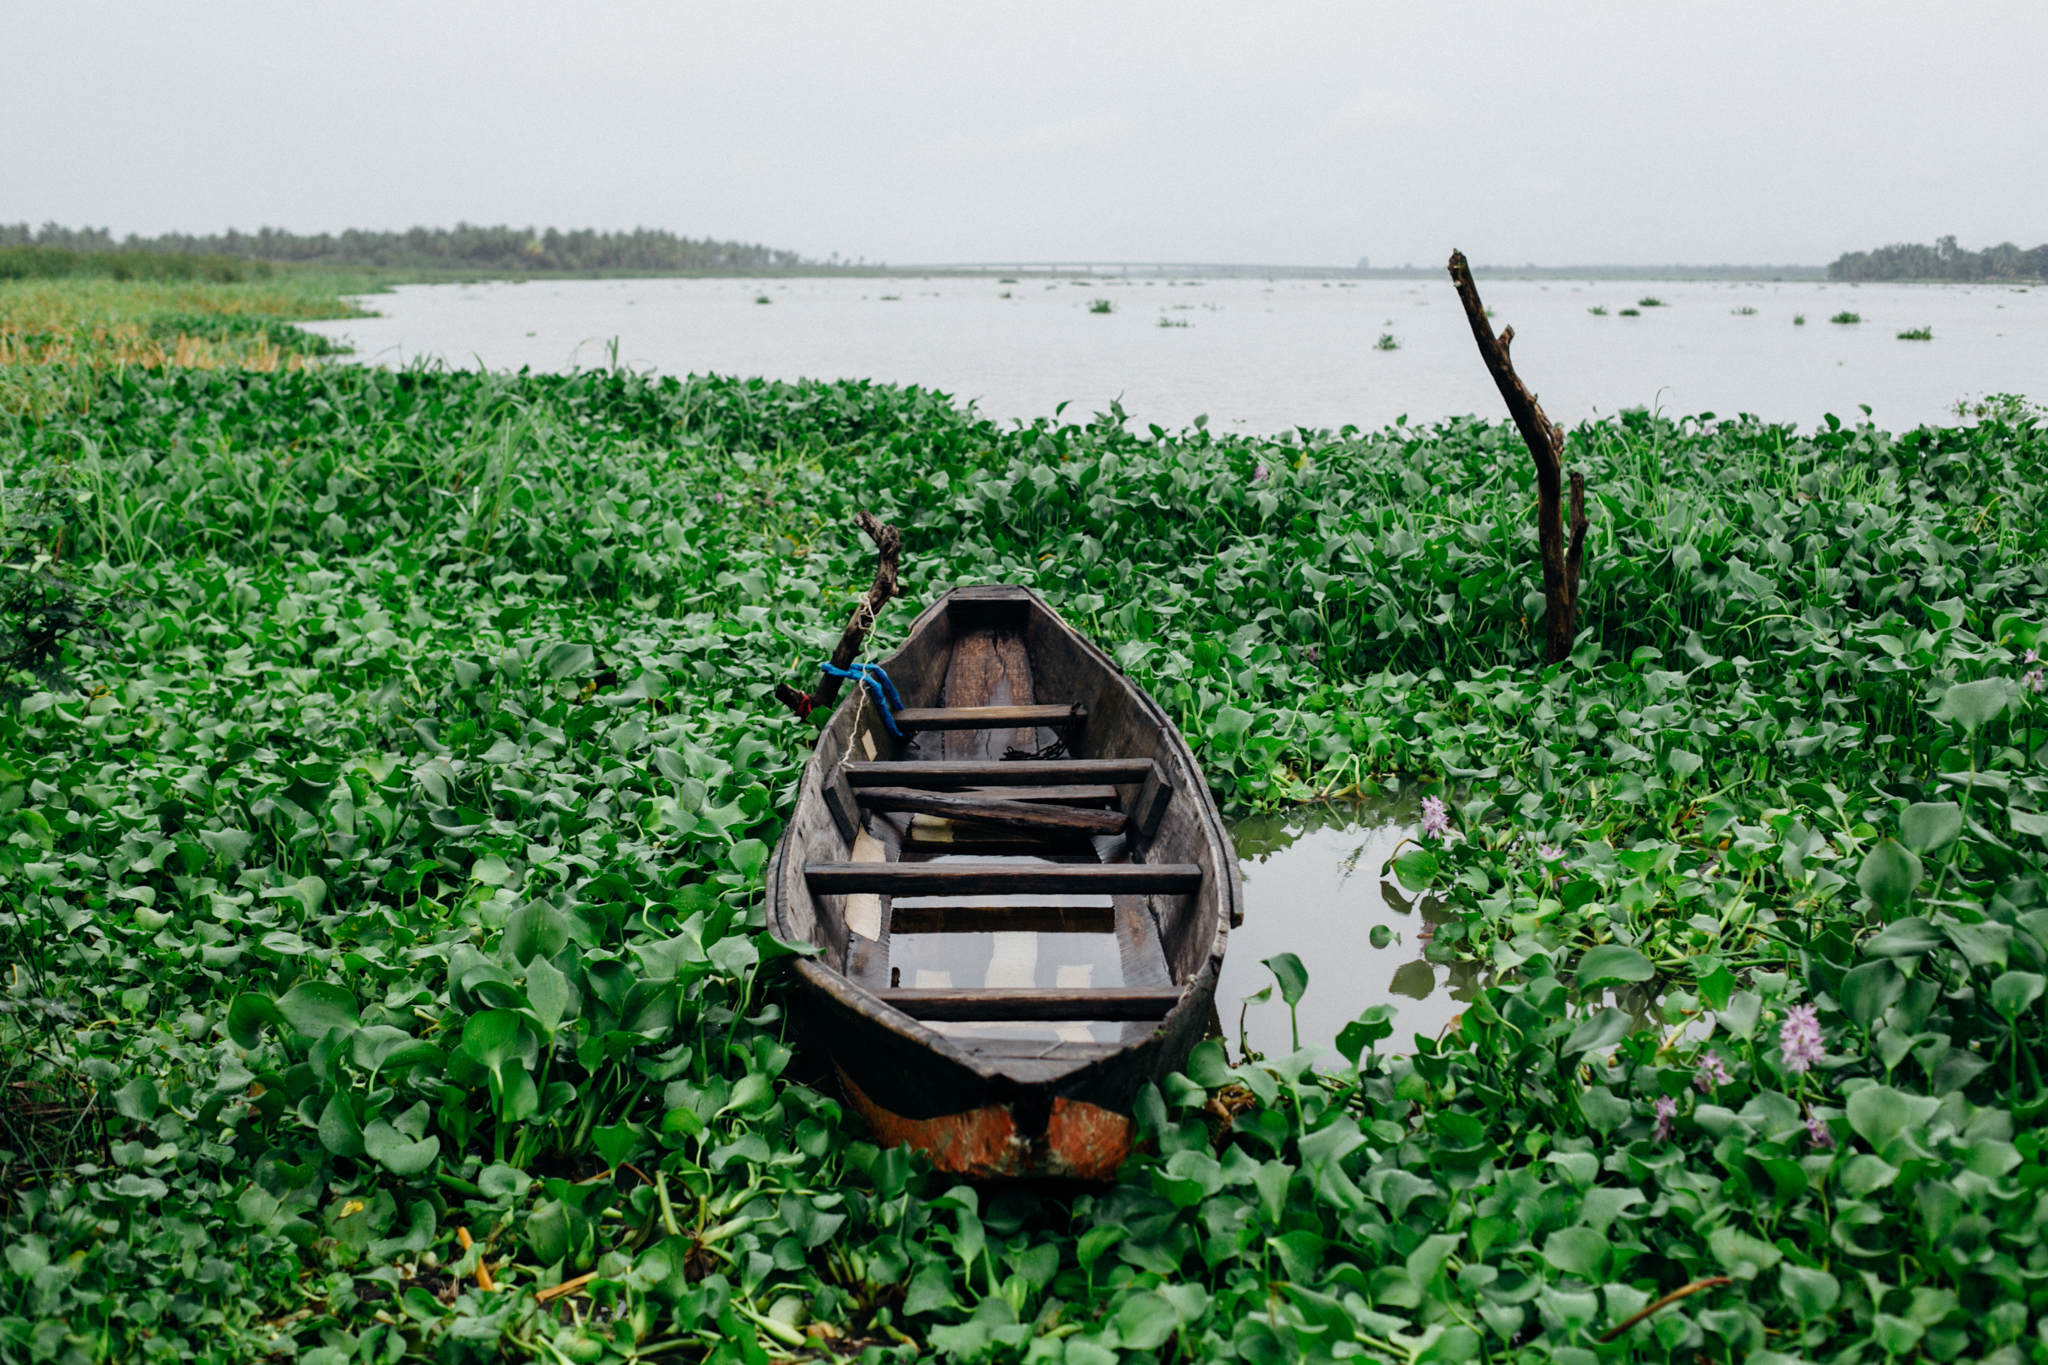 Canoe surrounded by water hyacinth, Badagry